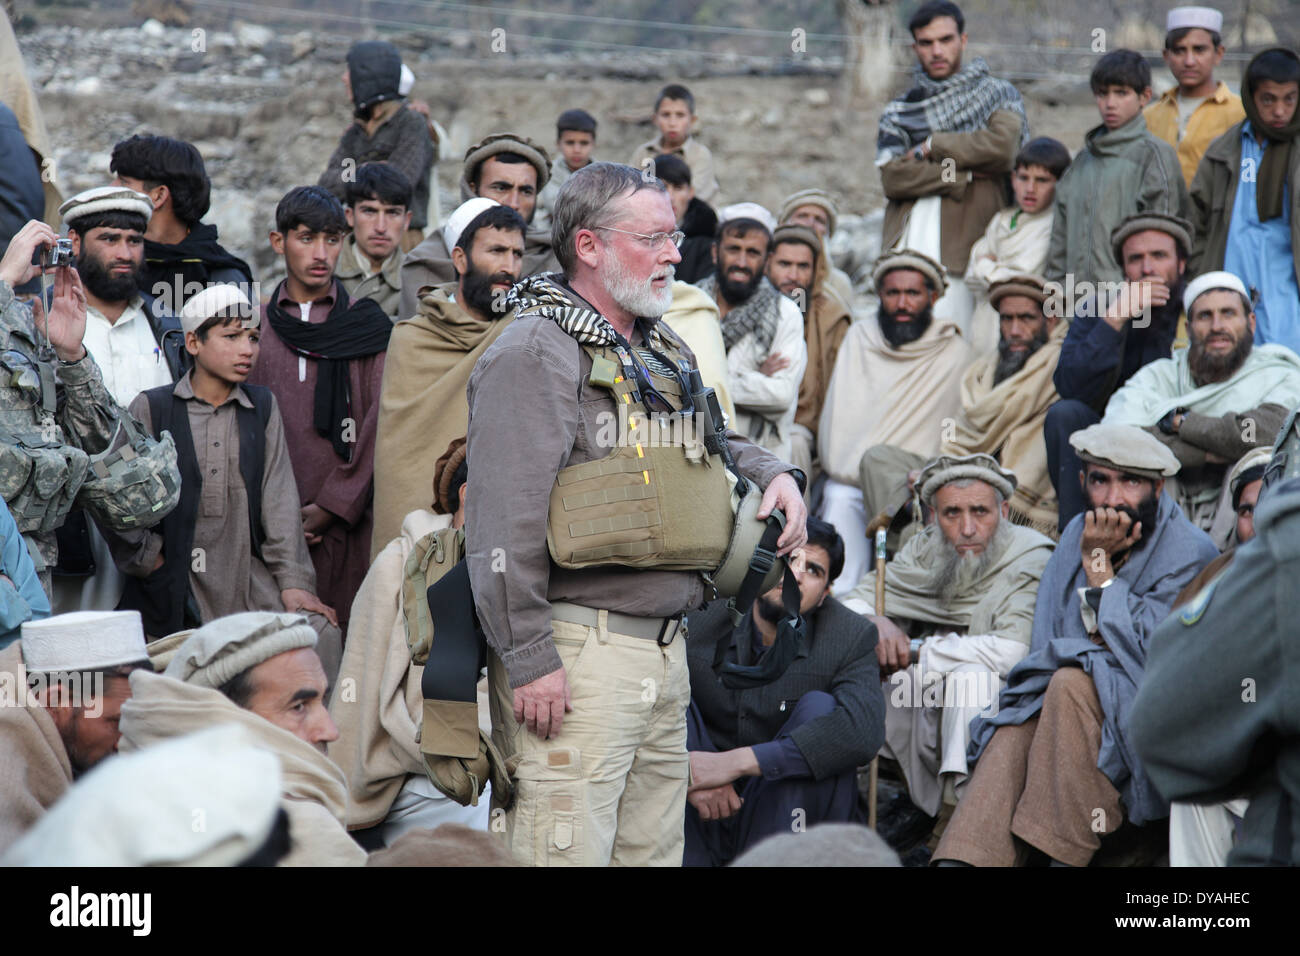 Ted Wittenberger, a US Agency for International Development representative with the Kunar Provincial Reconstruction Team, speaks to Afghan residents during a shura, or meeting December 7, 2009 in Lachey village, Shigal district, Kunar province, Afghanistan. - Stock Image